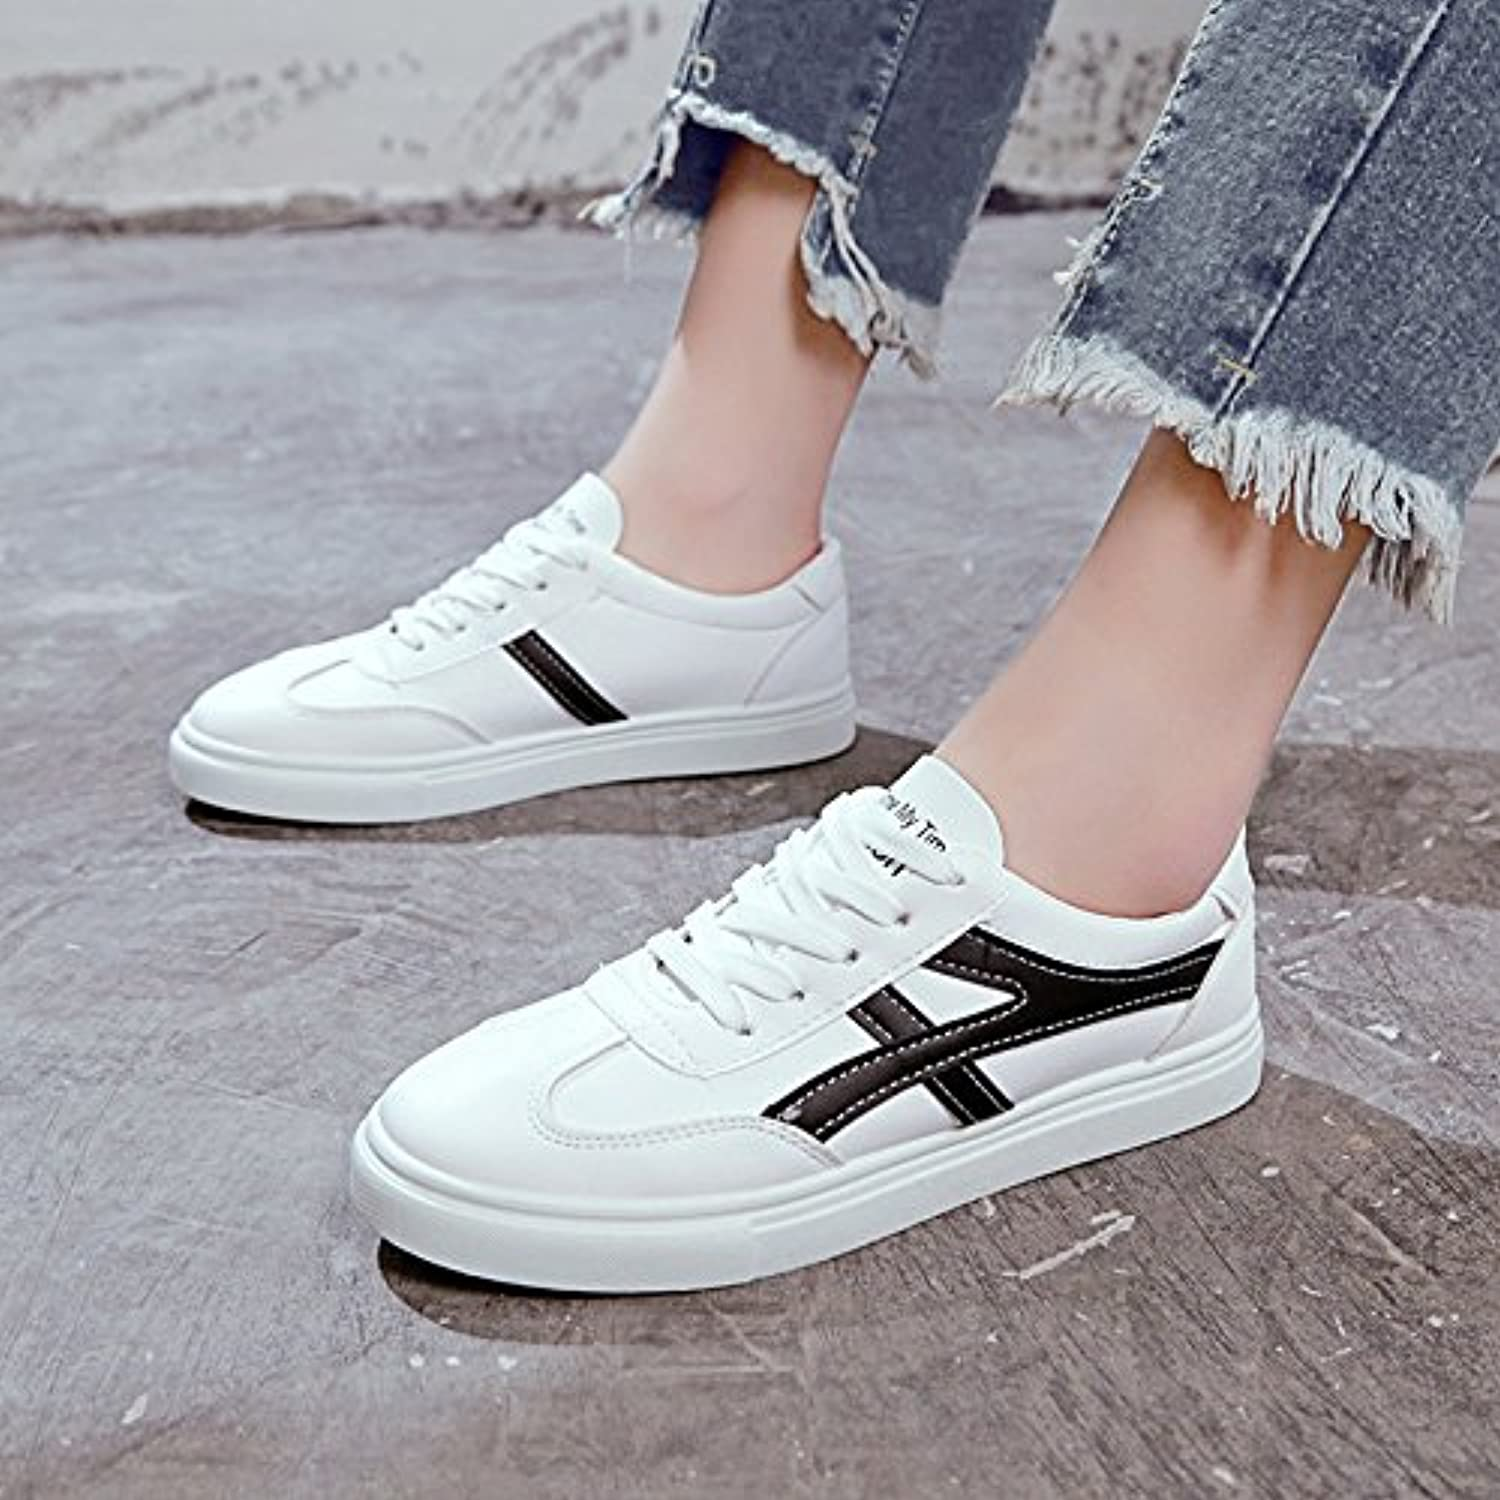 6a7d5779665 GAOLIM GAOLIM GAOLIM The Small White Shoes The Girl Spring Wild Casual Flat  Bottom White Shoes Student Board Shoes B07CC4TT7C Parent 9d01ff